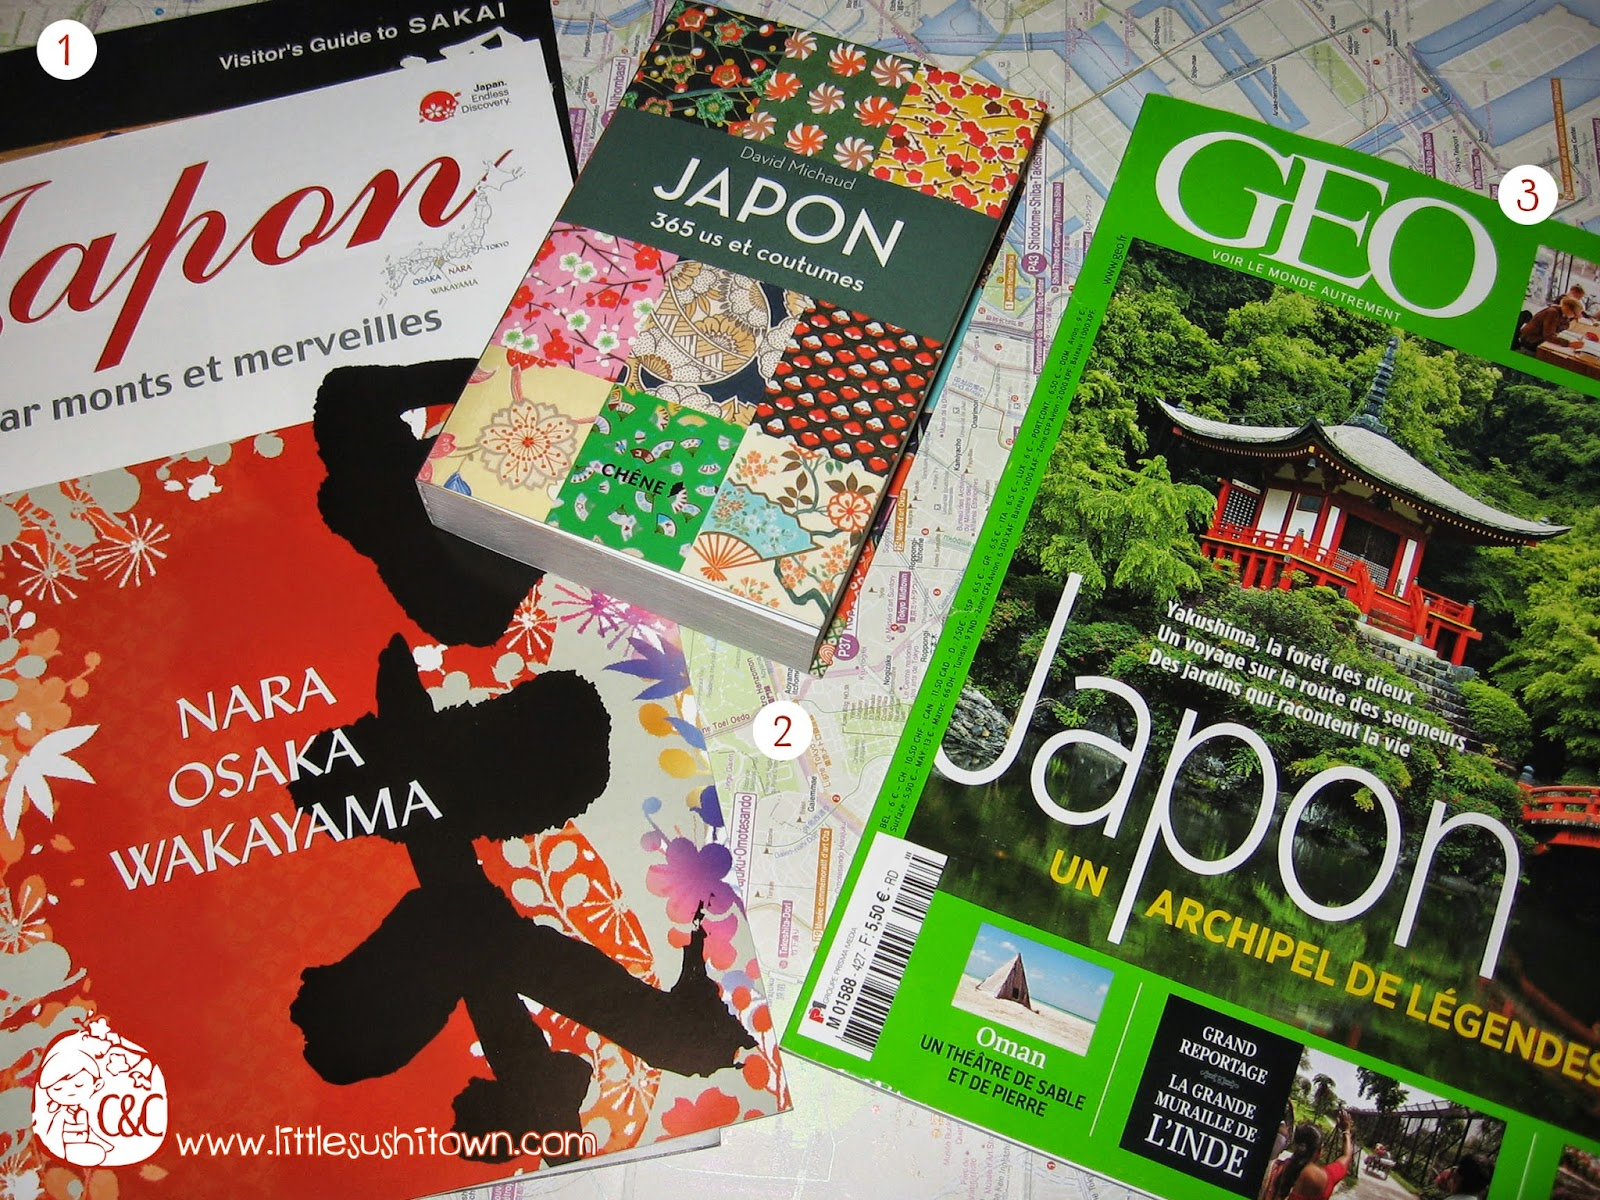 Let's go to Japan #02